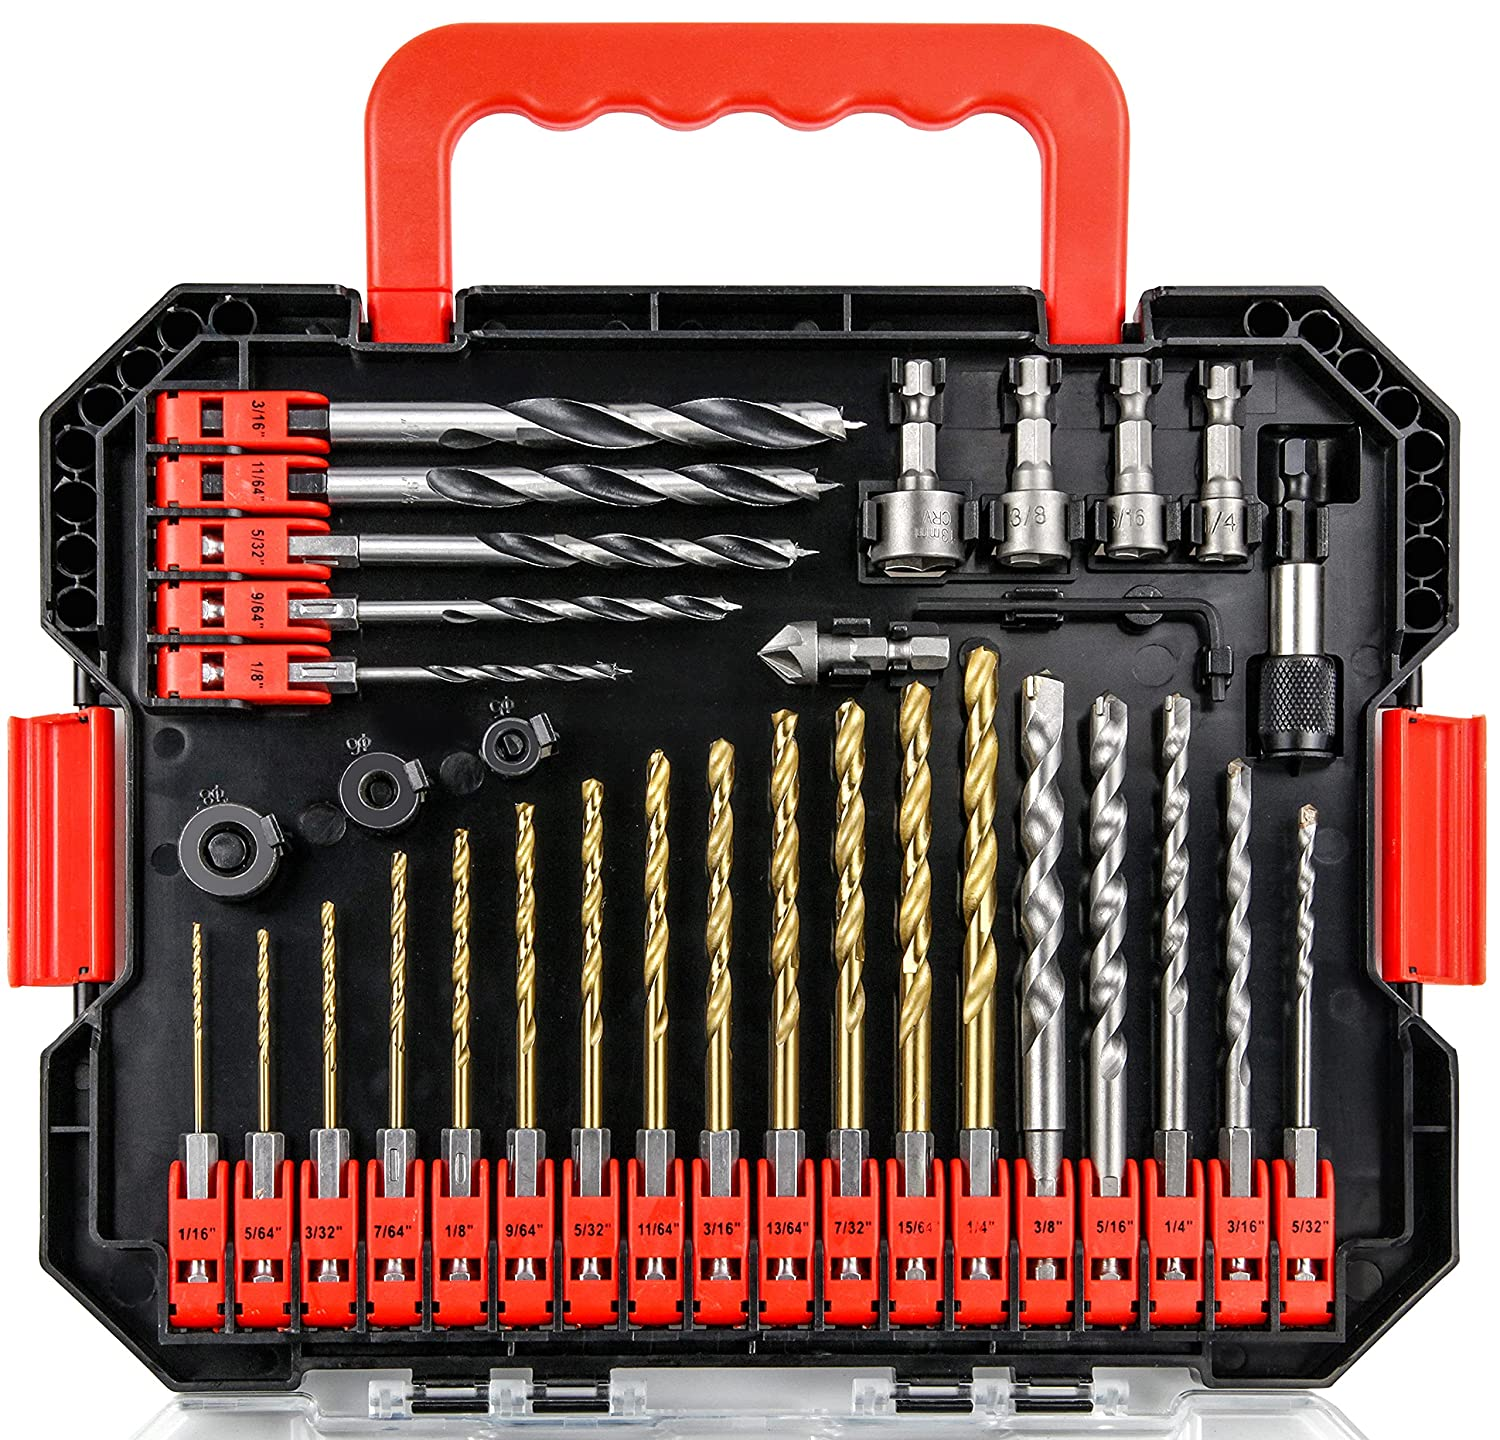 wesleydrill Ranking TOP12 Impact Drill Bit Set with 70% OFF Outlet Hex Driver Pcs Shan 33 Nut